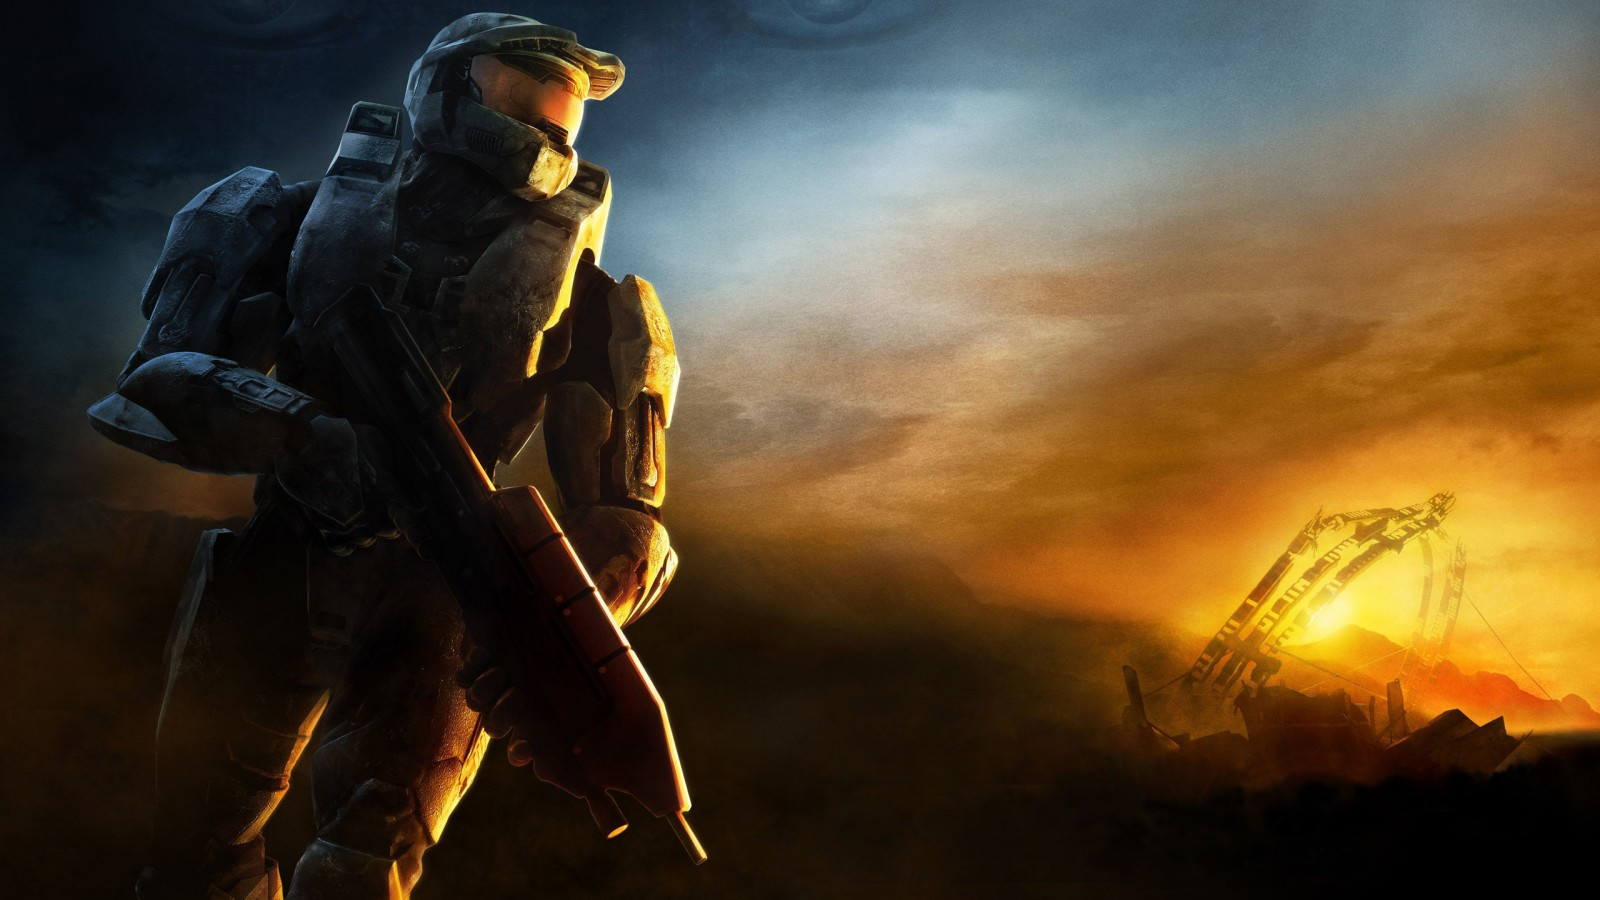 God Of War D Halo 3 Game Wallpapers Hd Wallpapers Id 9963